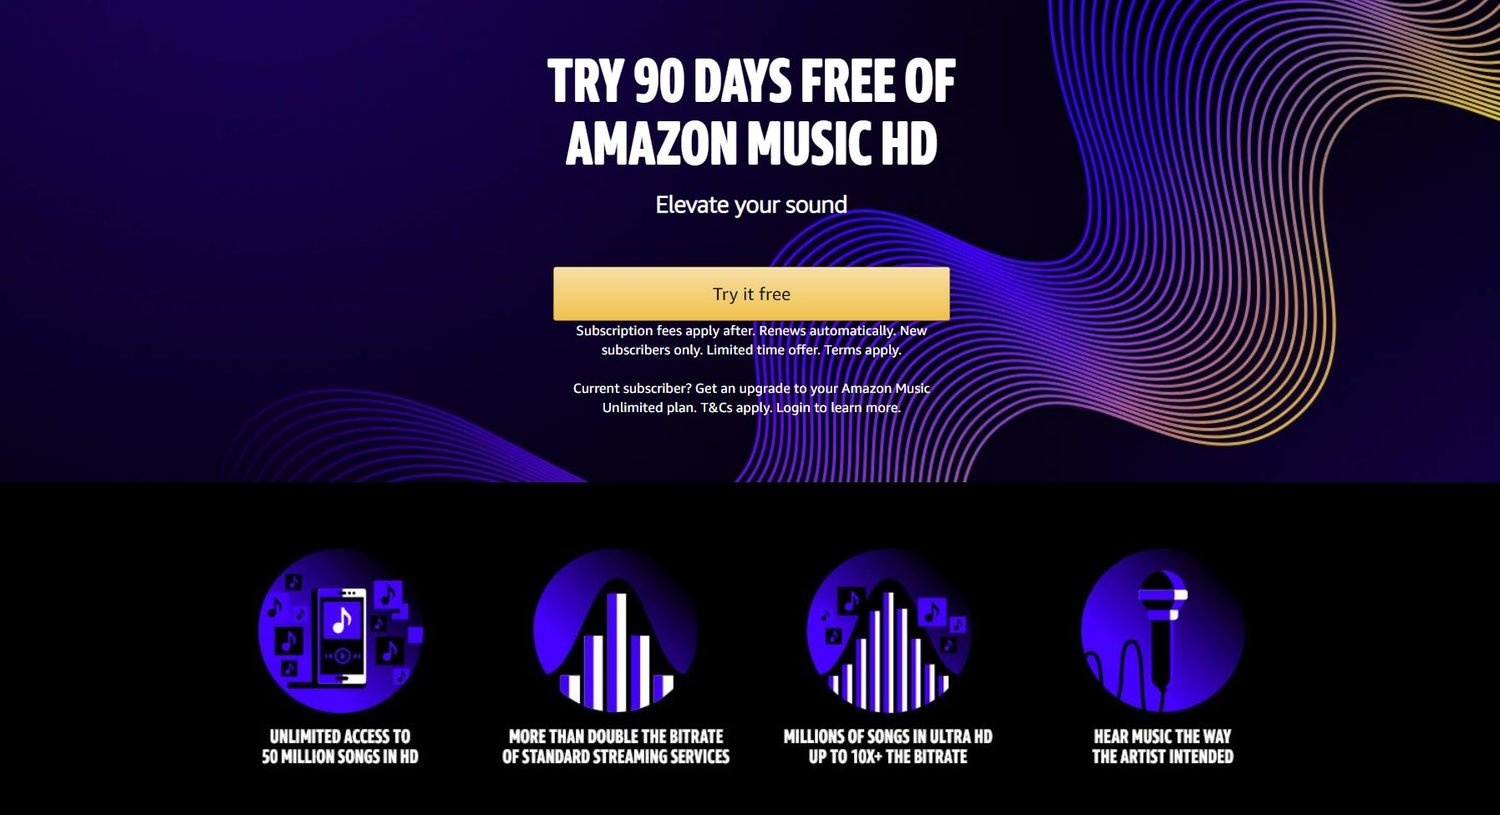 Amazon Music HD compatible devices